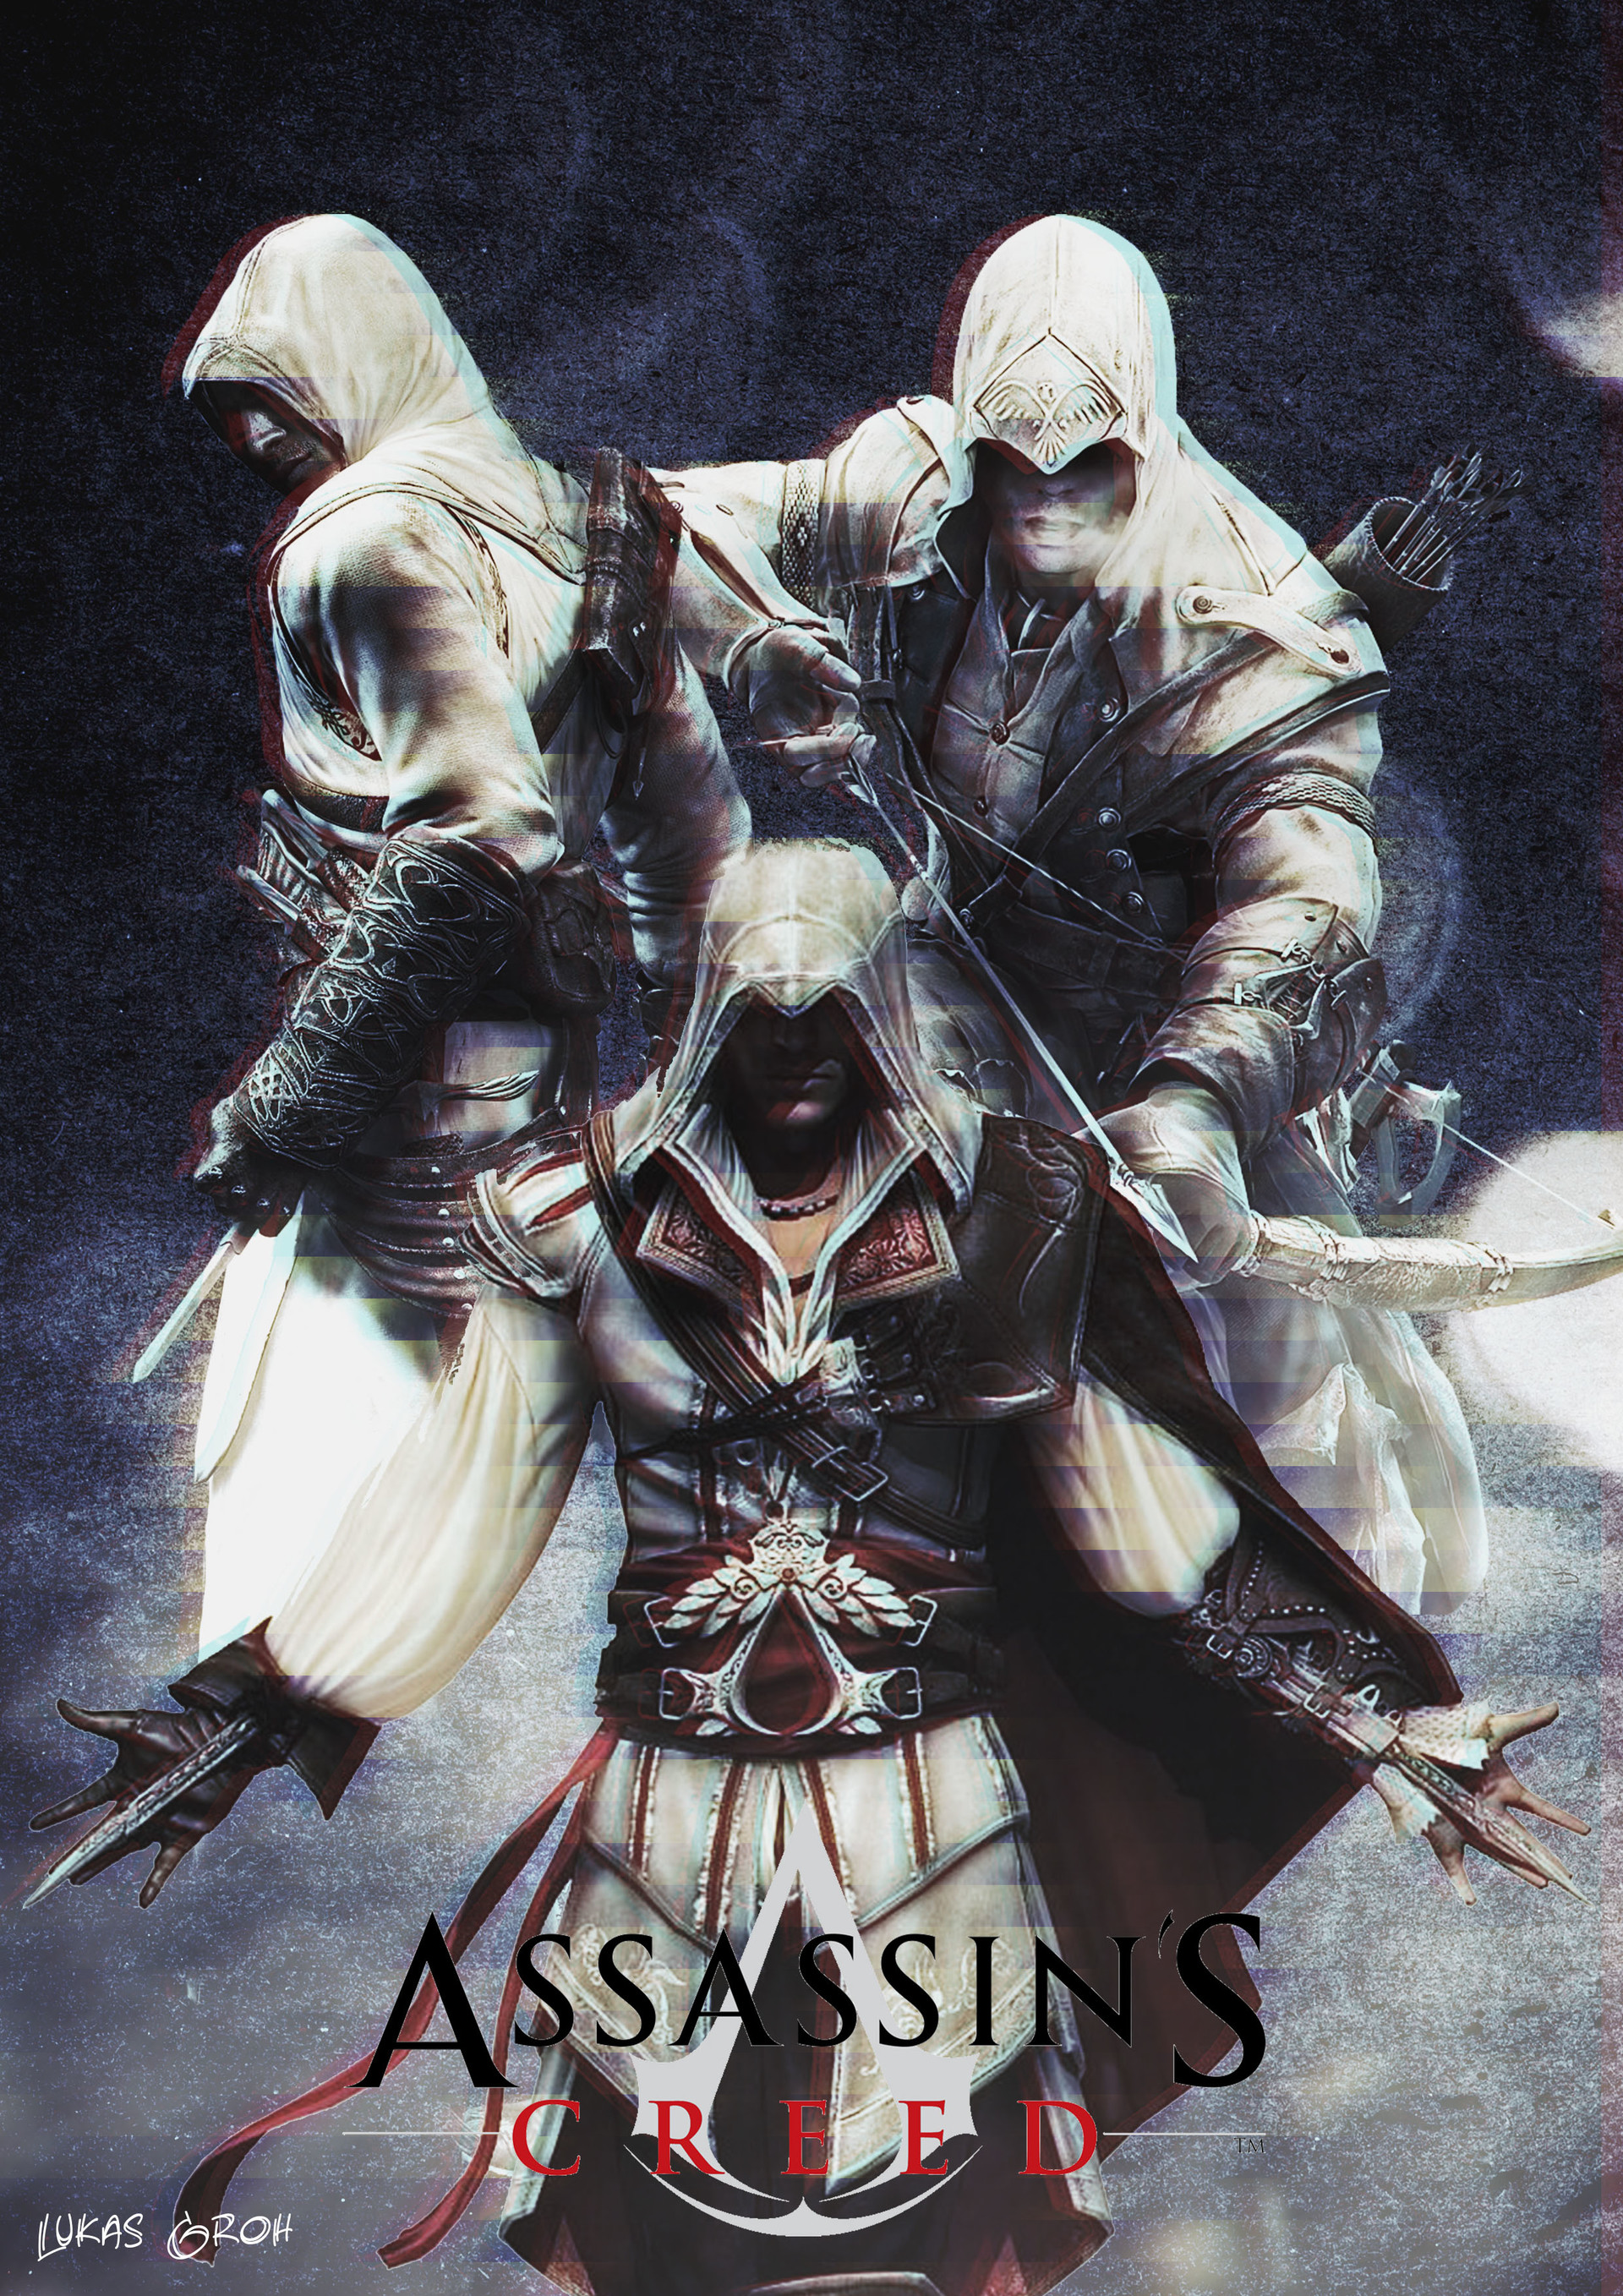 Lukas groh creed